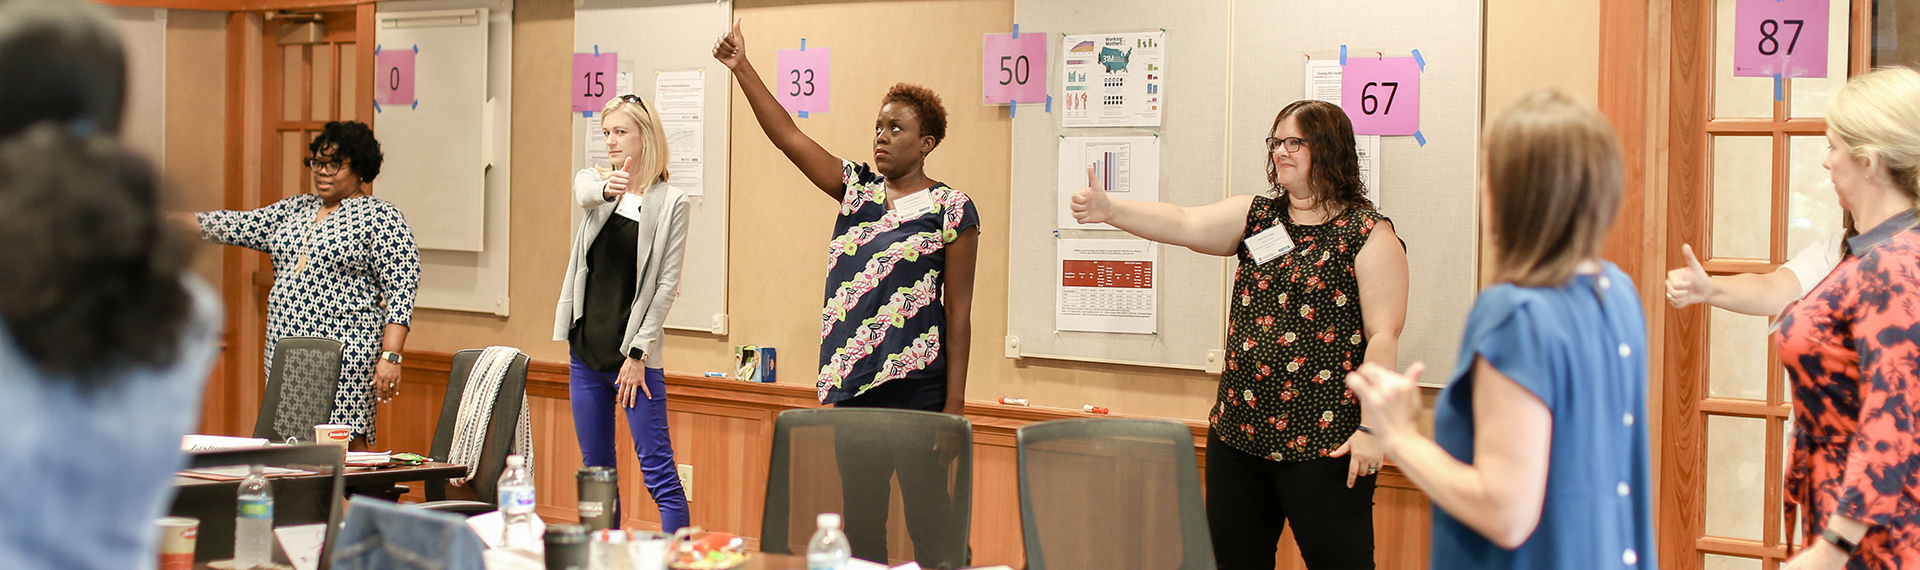 Women stand in front of a class giving thumbs up or thumbs down signs are part of a leadership development session.